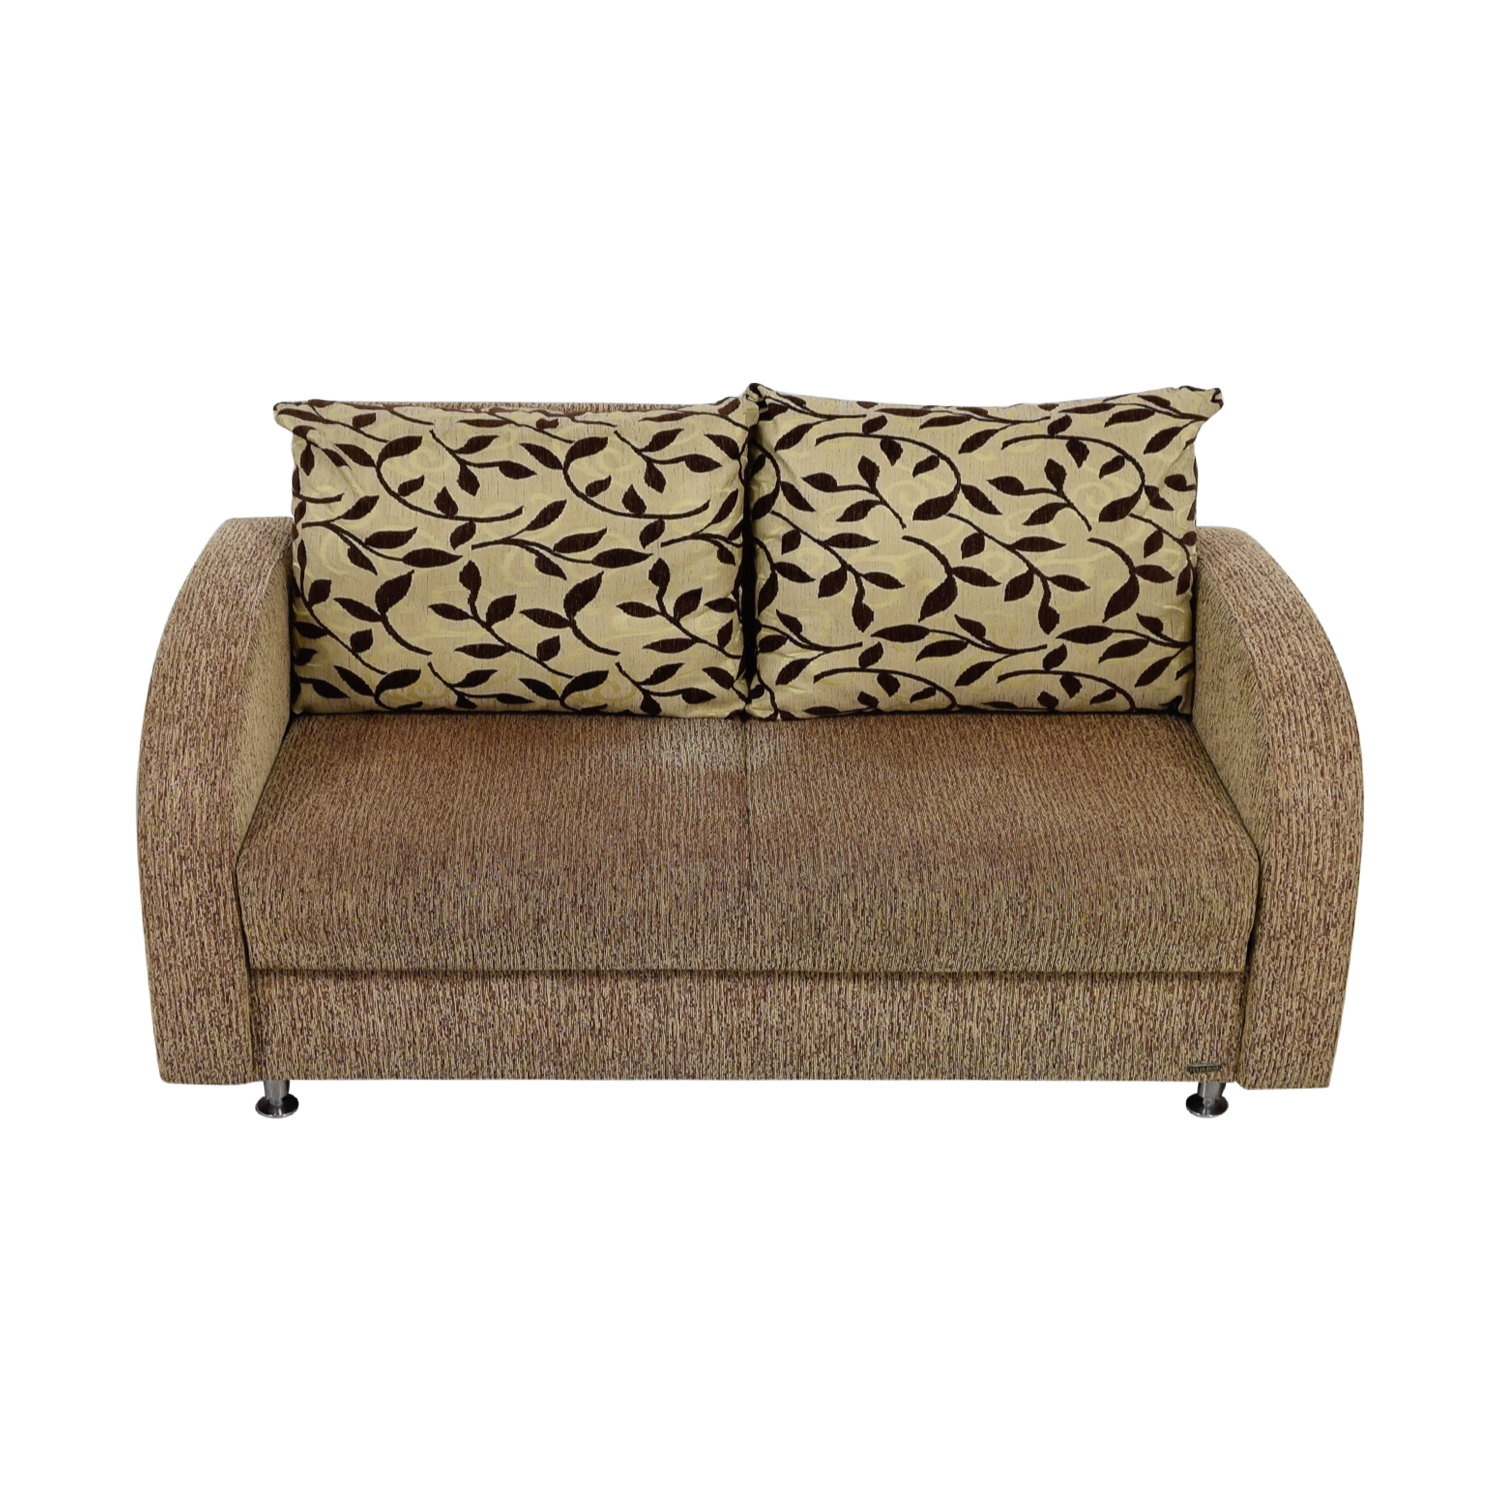 Istikbal Istikbal Beige Multi Color Convertible Loveseat coupon